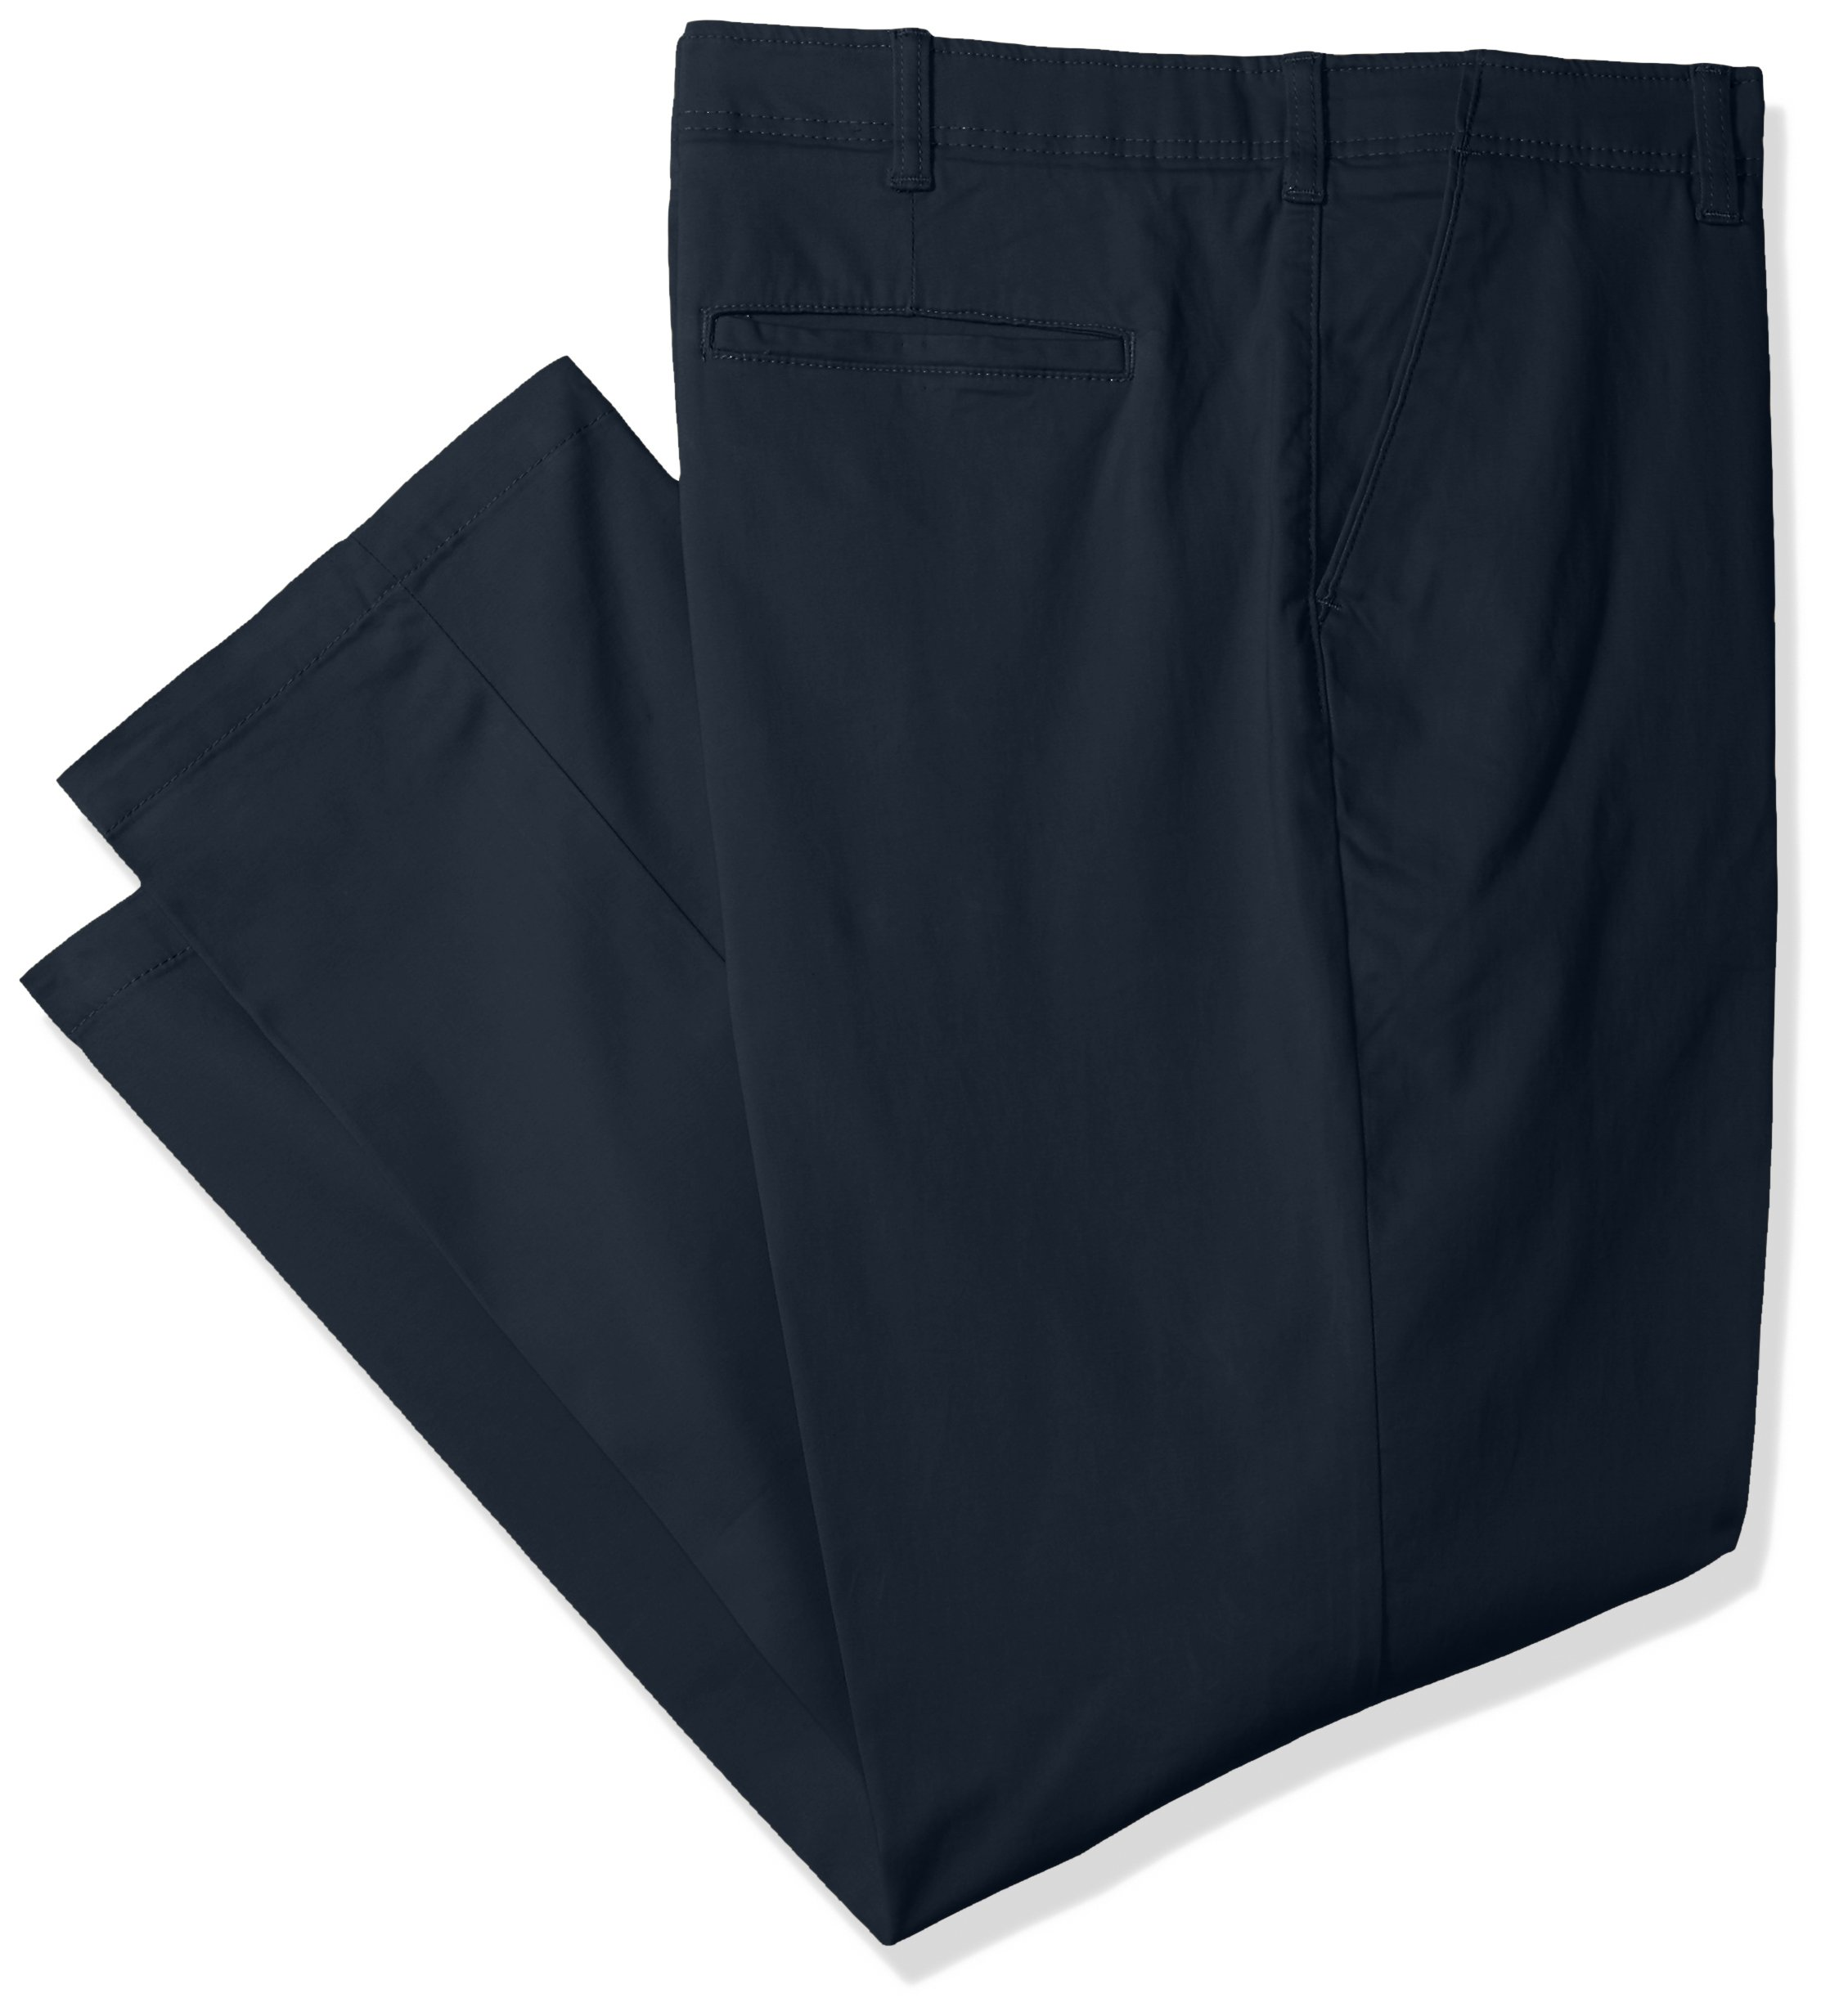 LEE Men's Big Tall Performance Series Extreme Comfort Pant, Navy, 42W x 30L